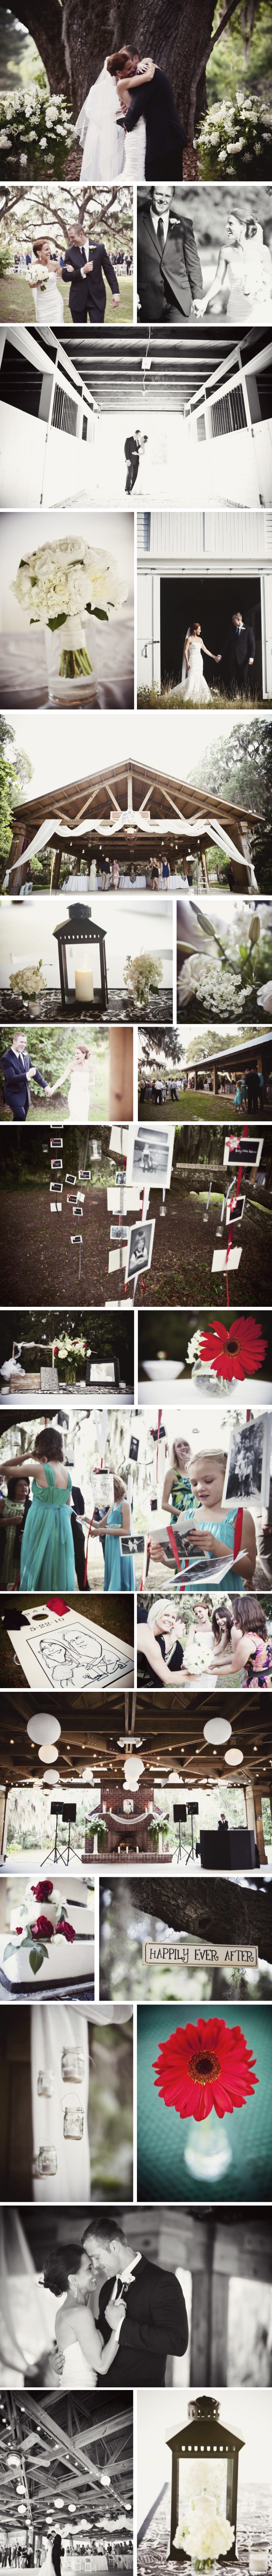 Southern Wedding, wedding blogs